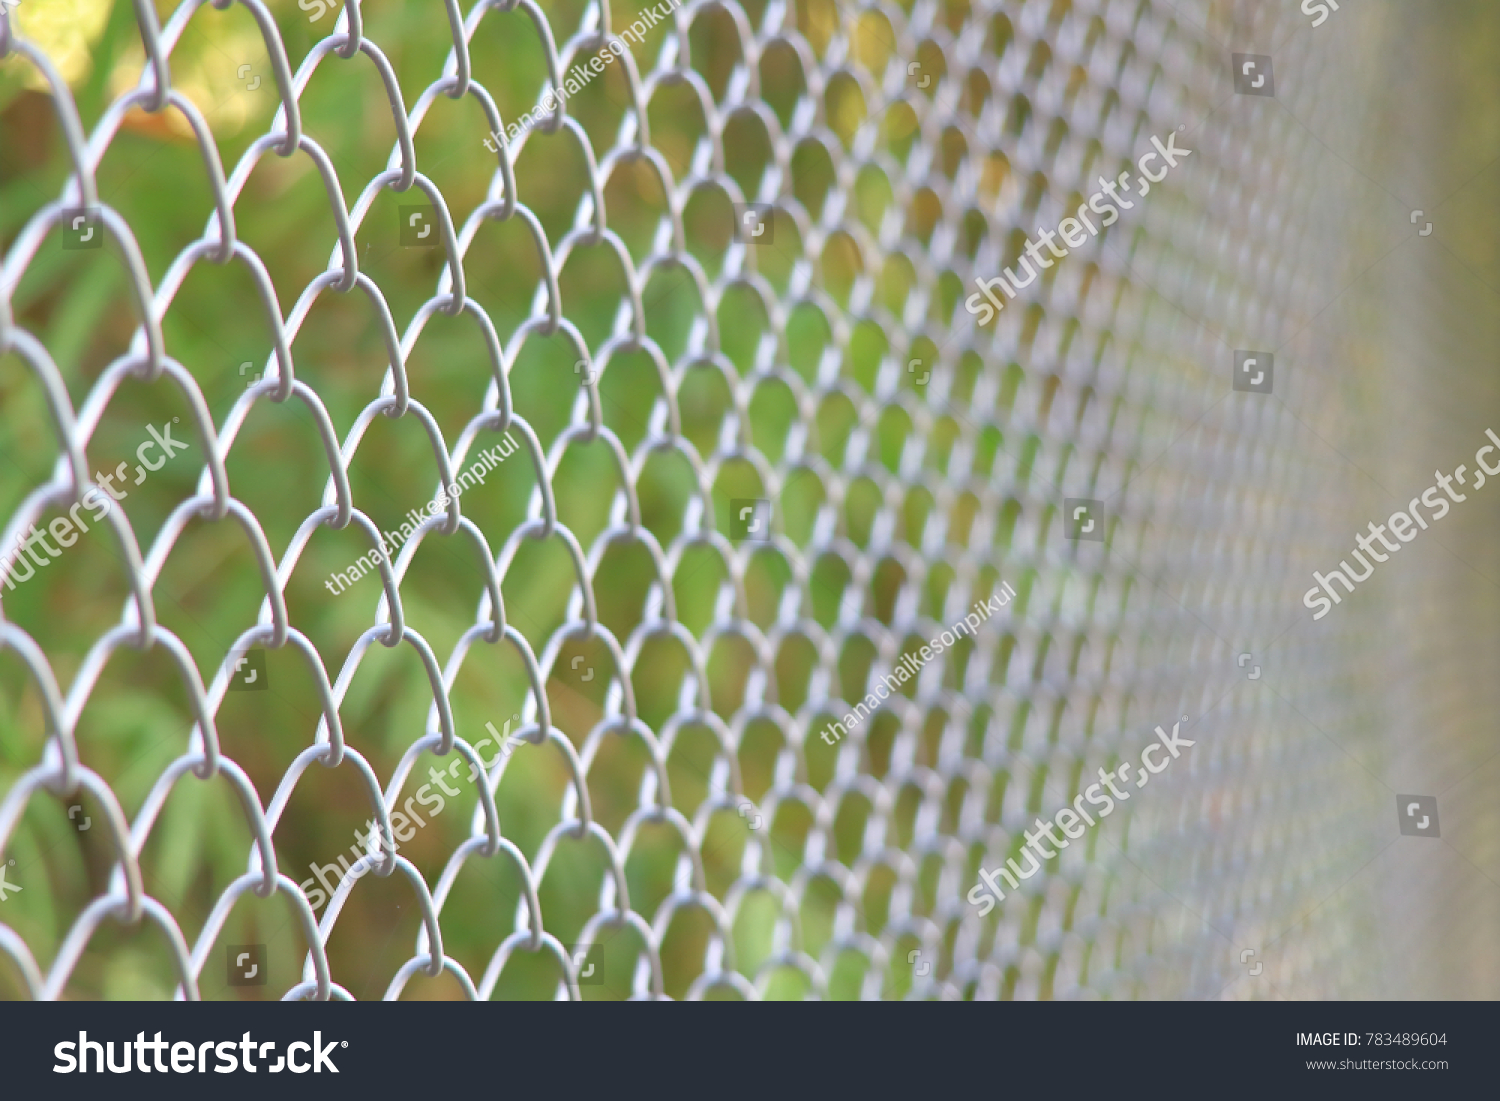 Chainlink Fencing Cyclone Fence Hurricane Fence Stock Photo (Royalty ...